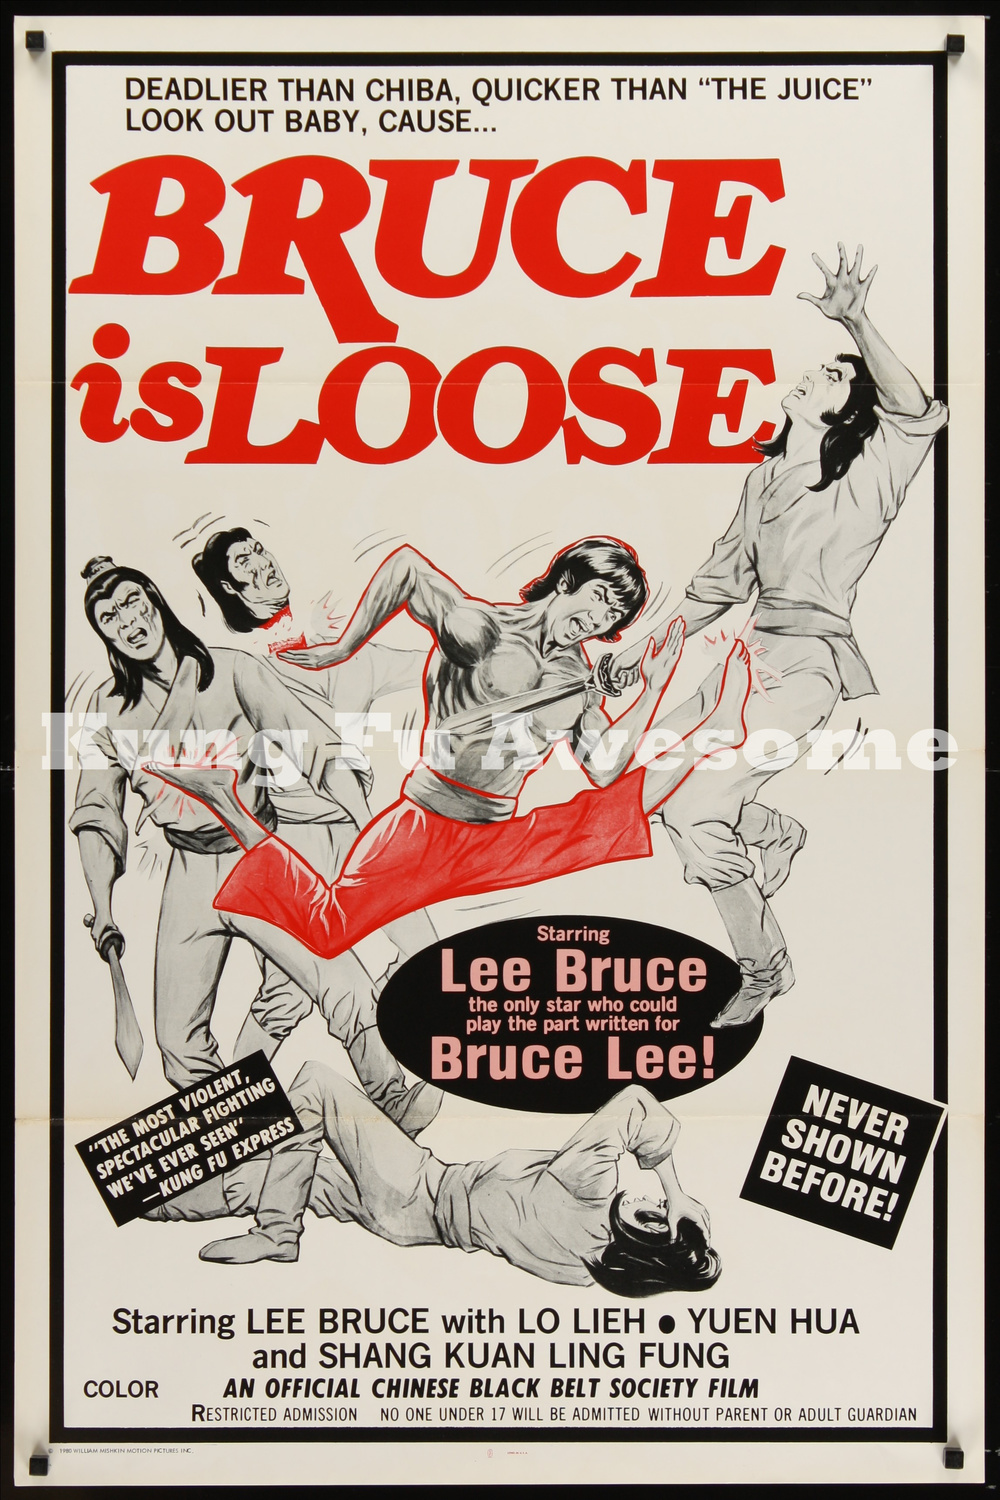 bruce_is_loose_NZ03751_L.jpg